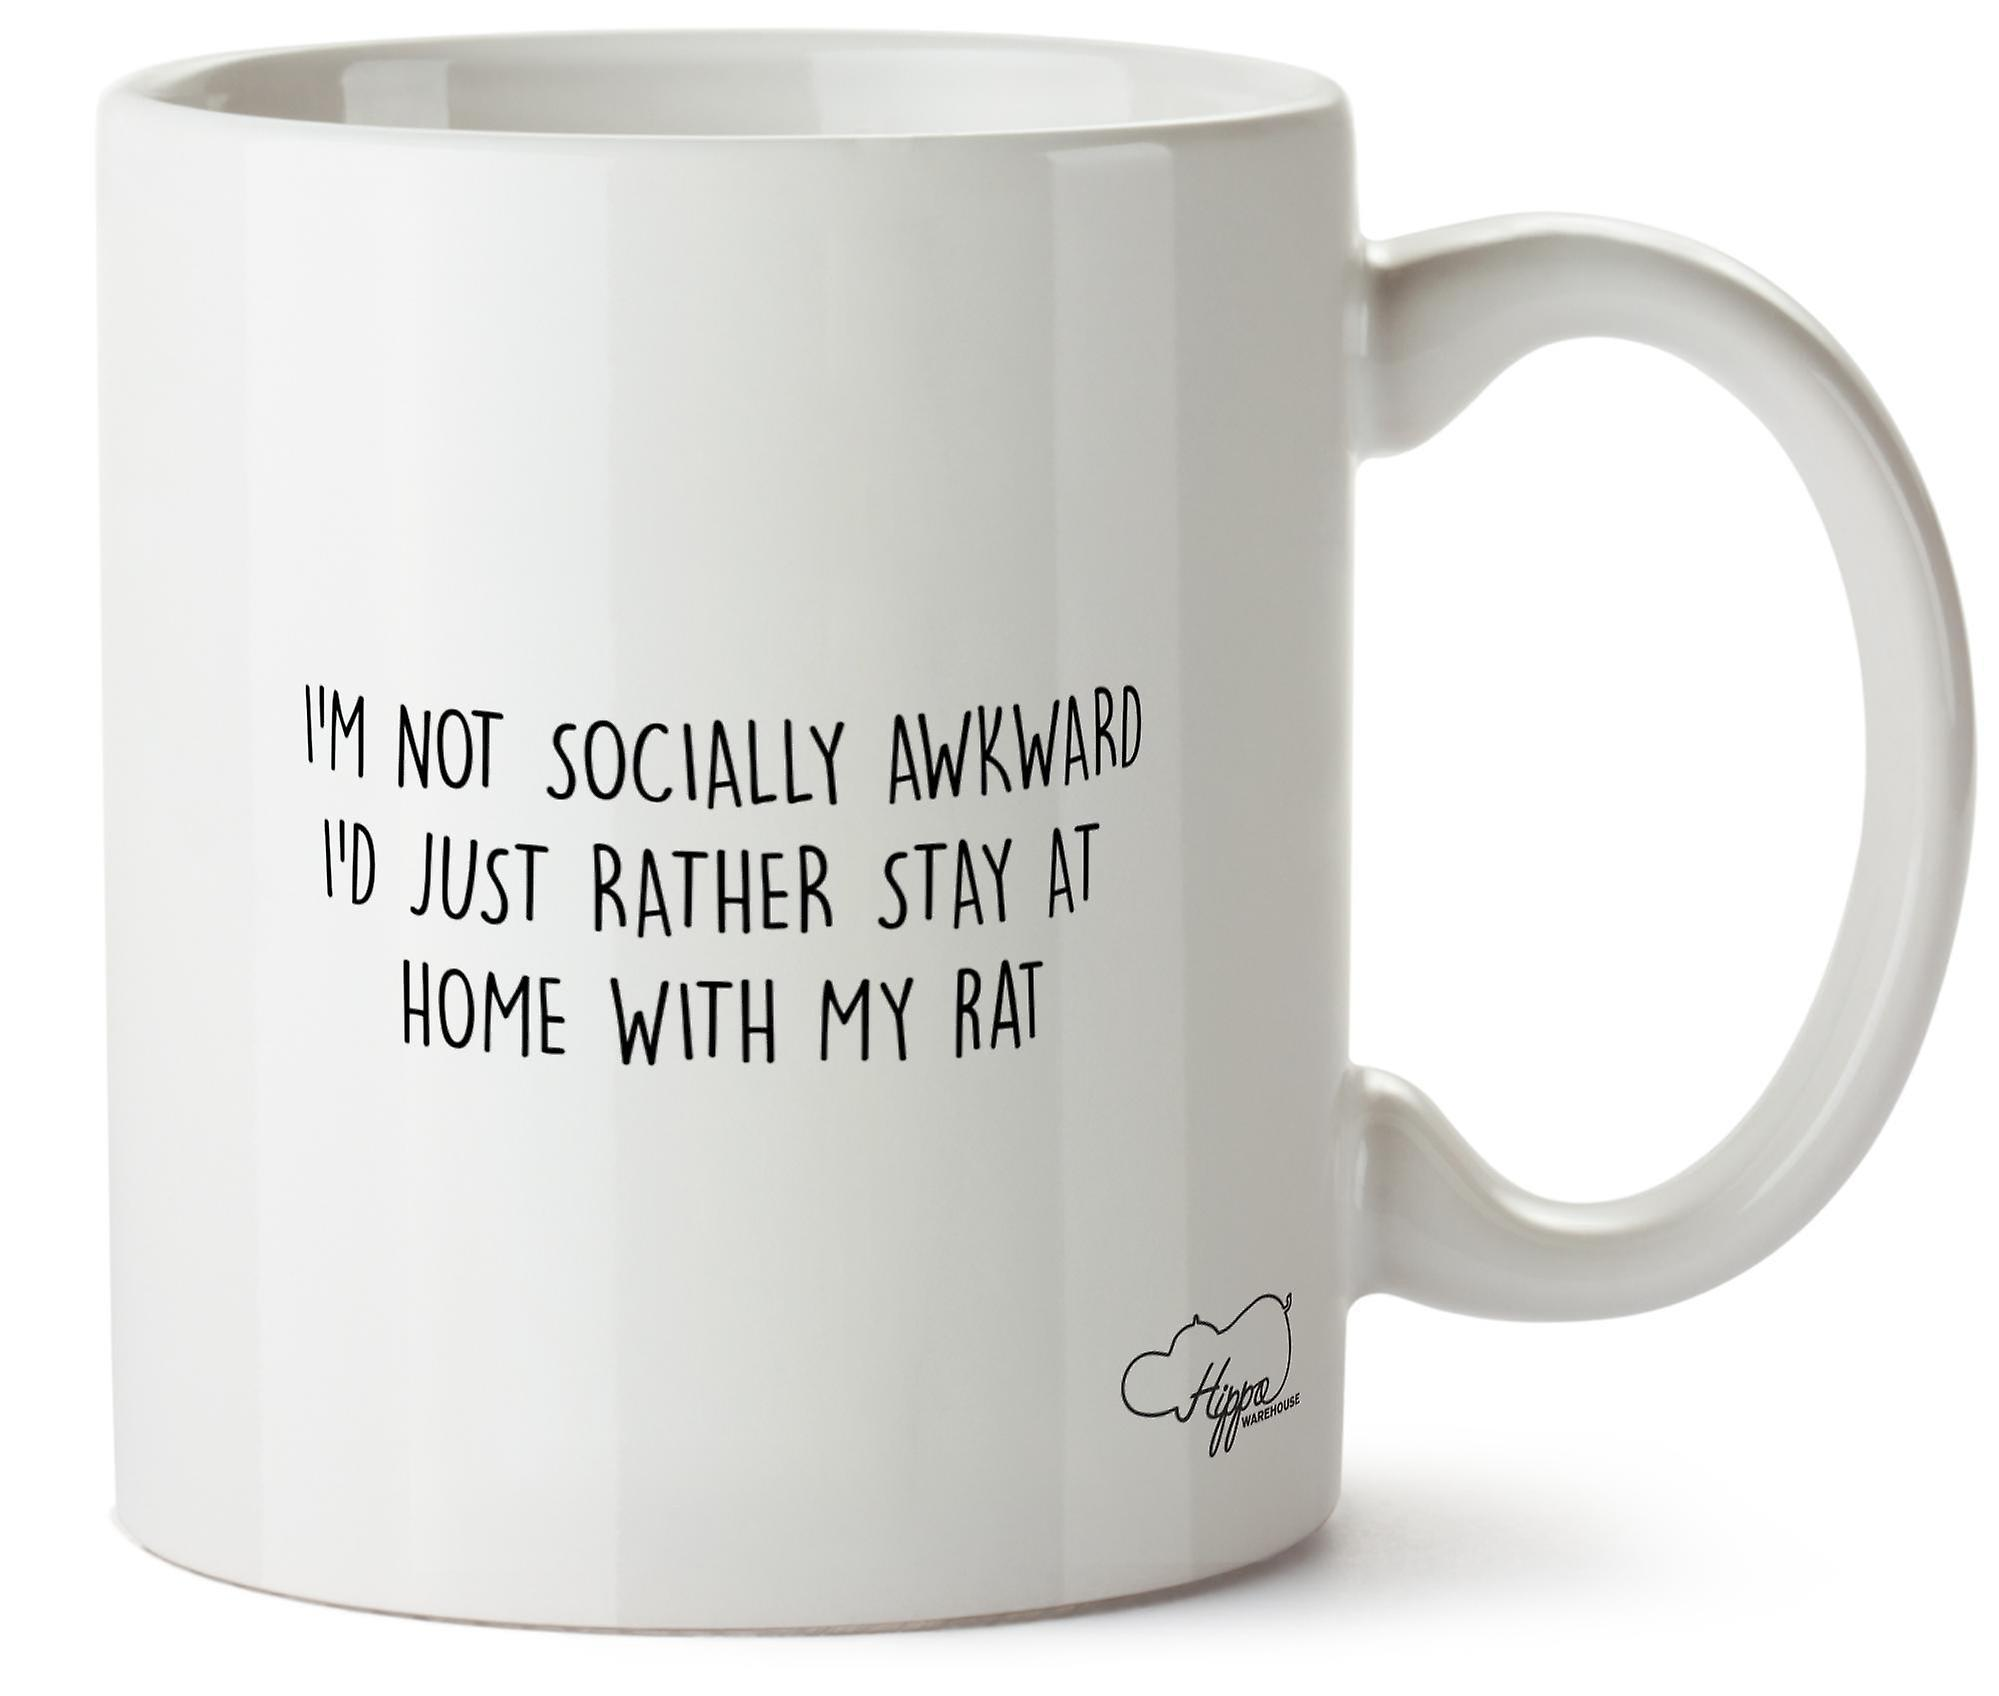 Hippowarehouse I'm Not Socially Awkward I'd Just Rather Stay At Home With My Rat Printed Mug Cup Ceramic 10oz